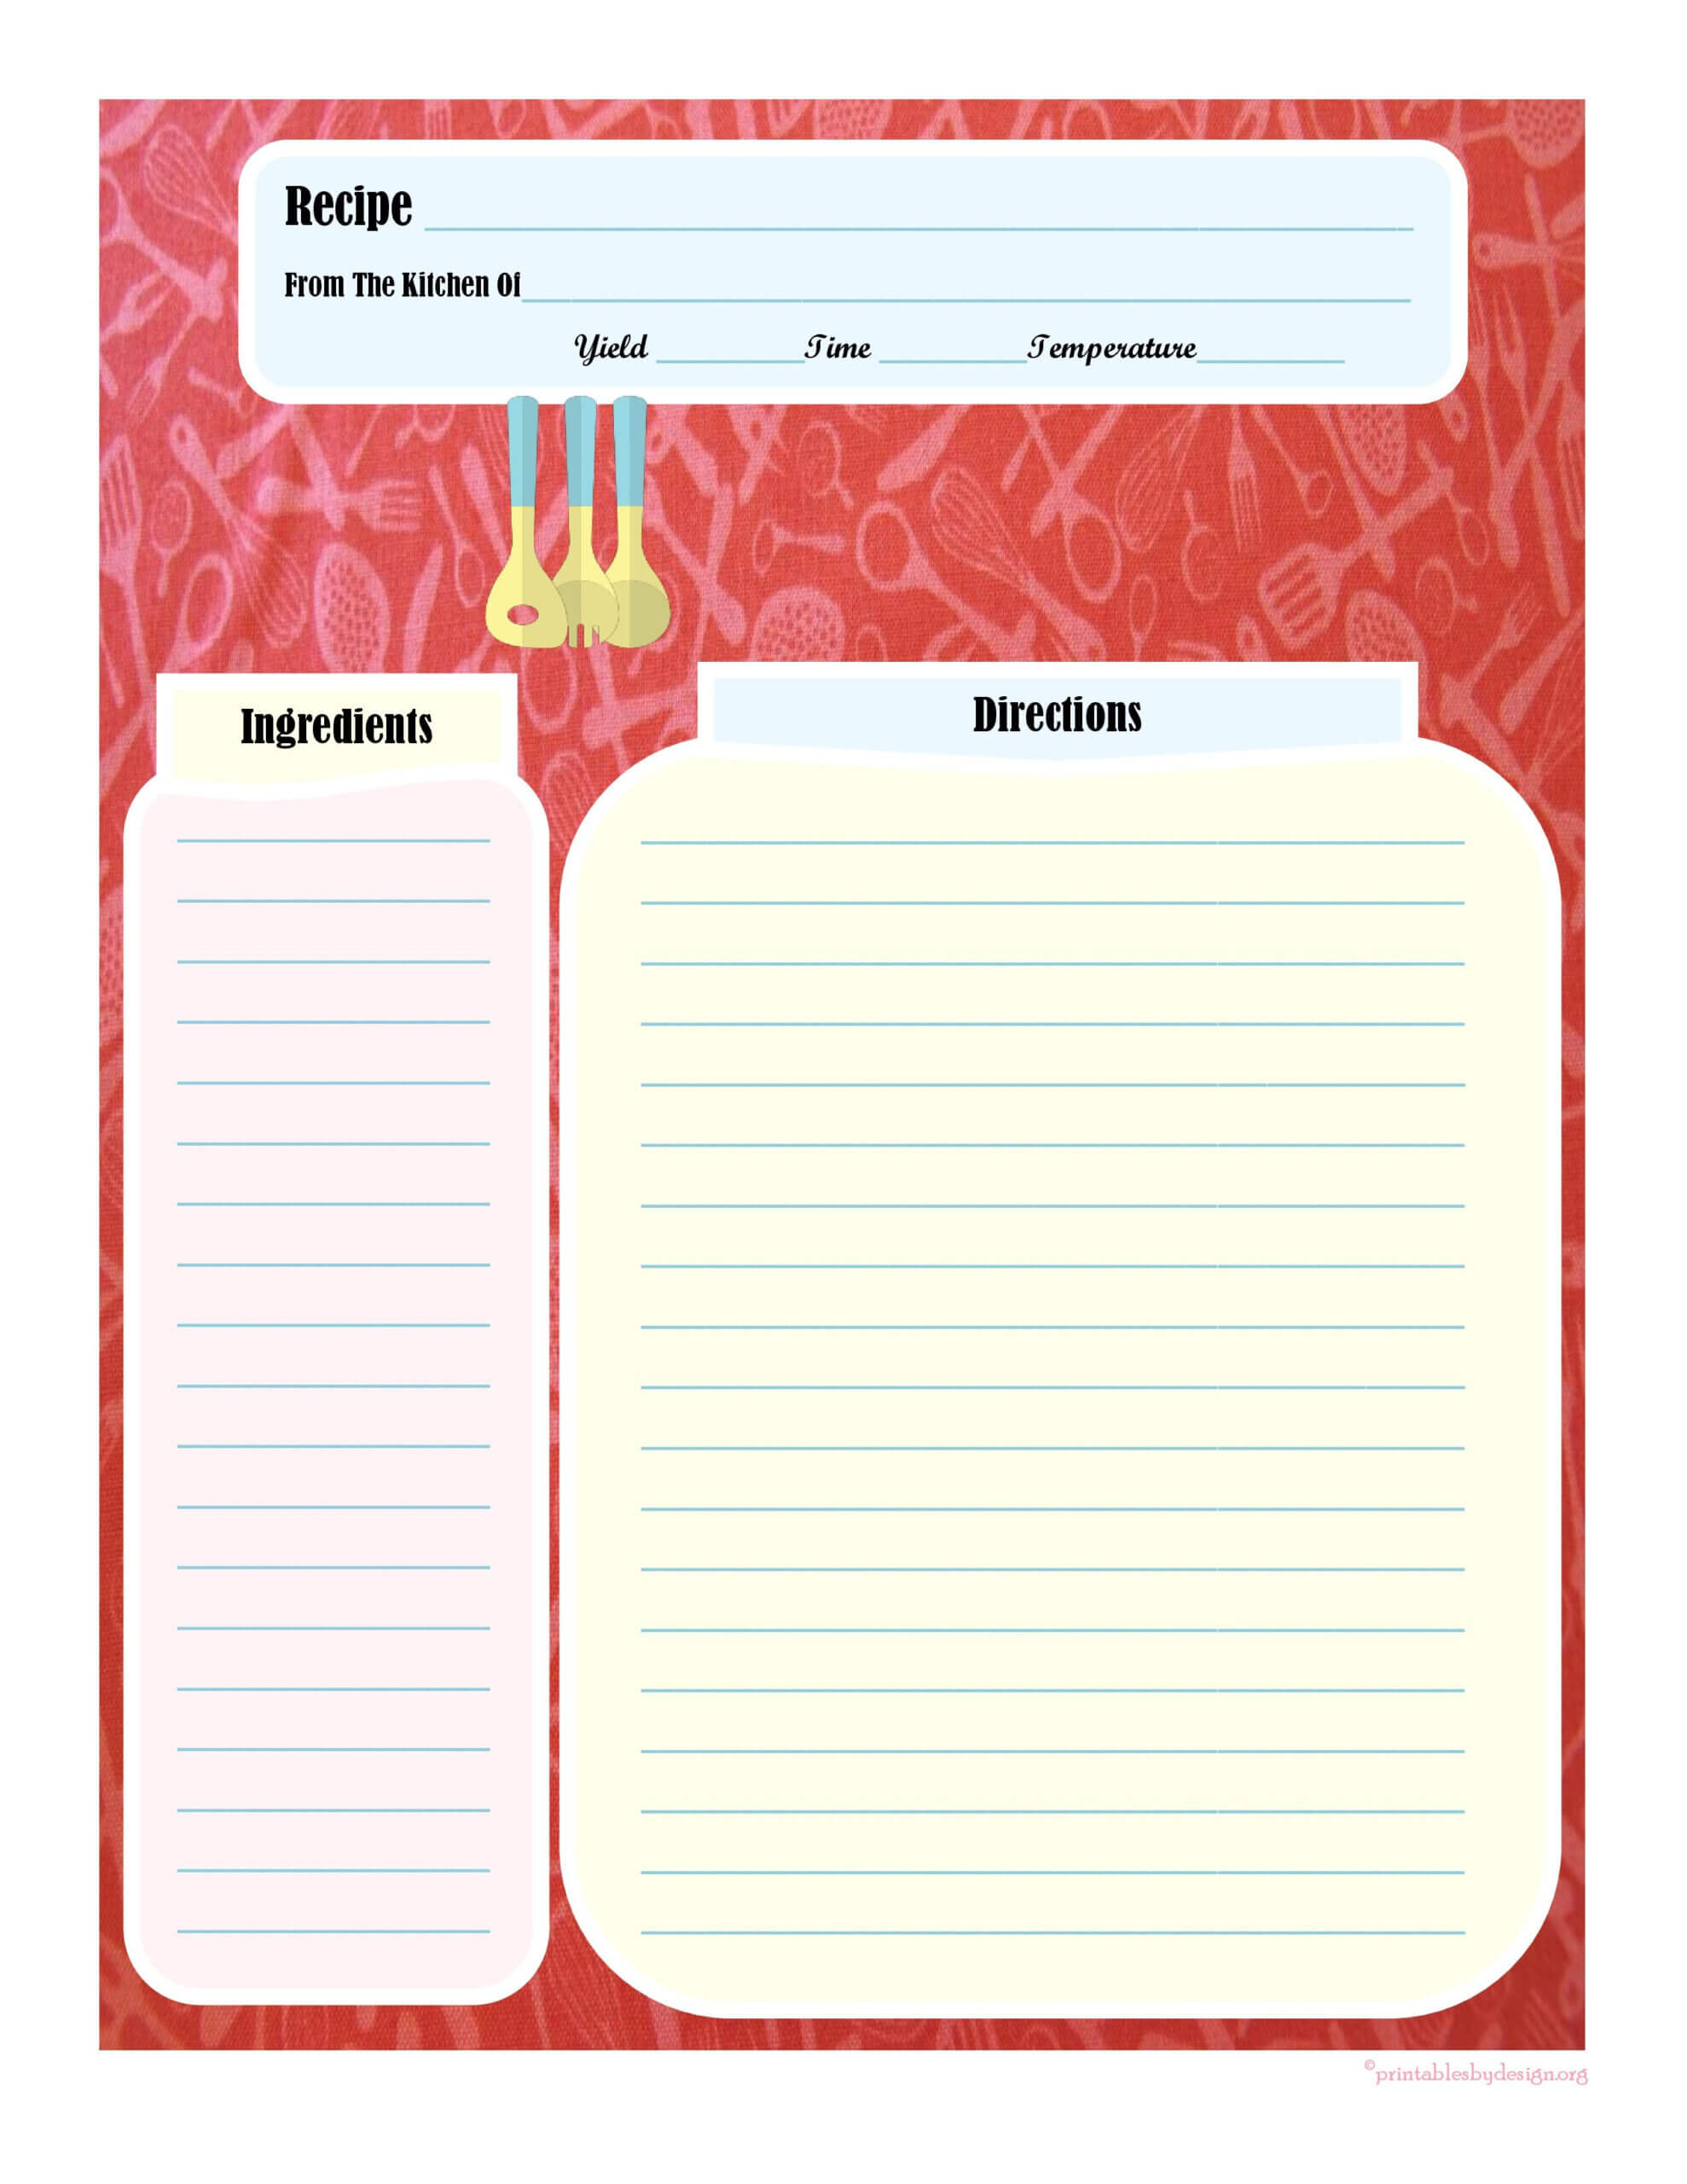 Full Page Recipe Card | Printable Recipe Cards, Cookbook With Recipe Card Design Template